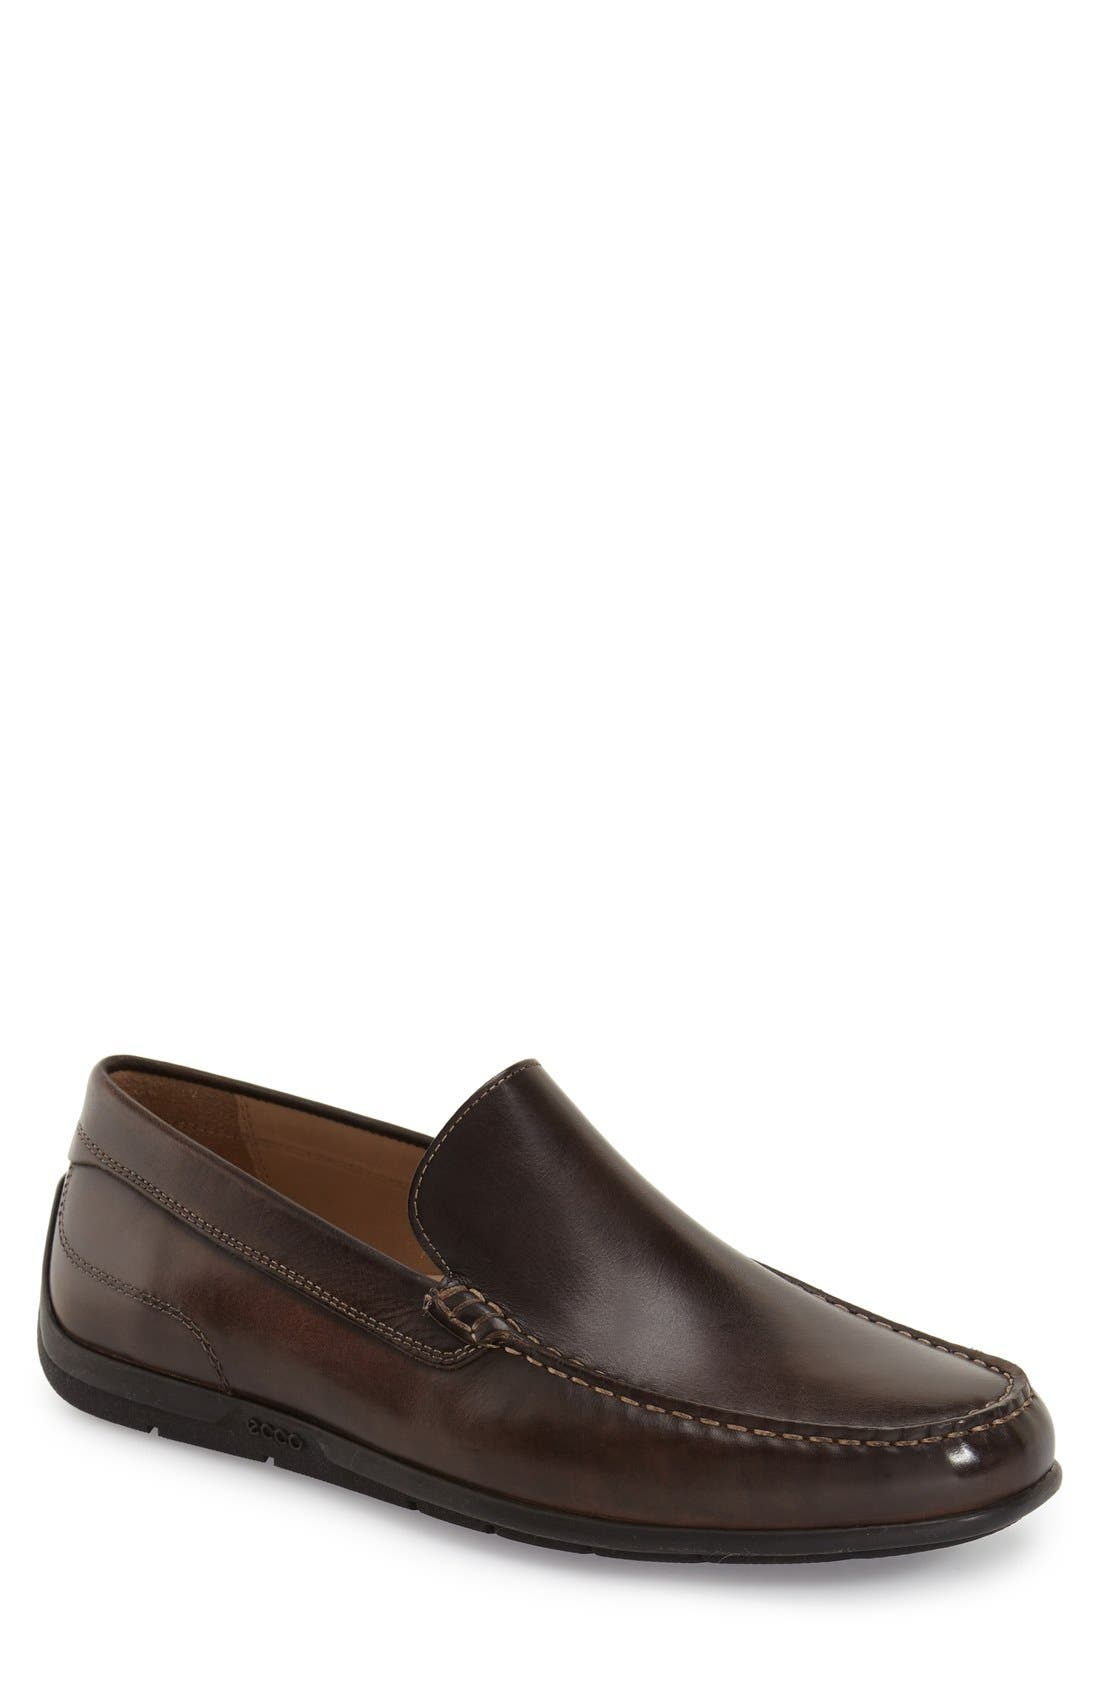 ecco loafers for men